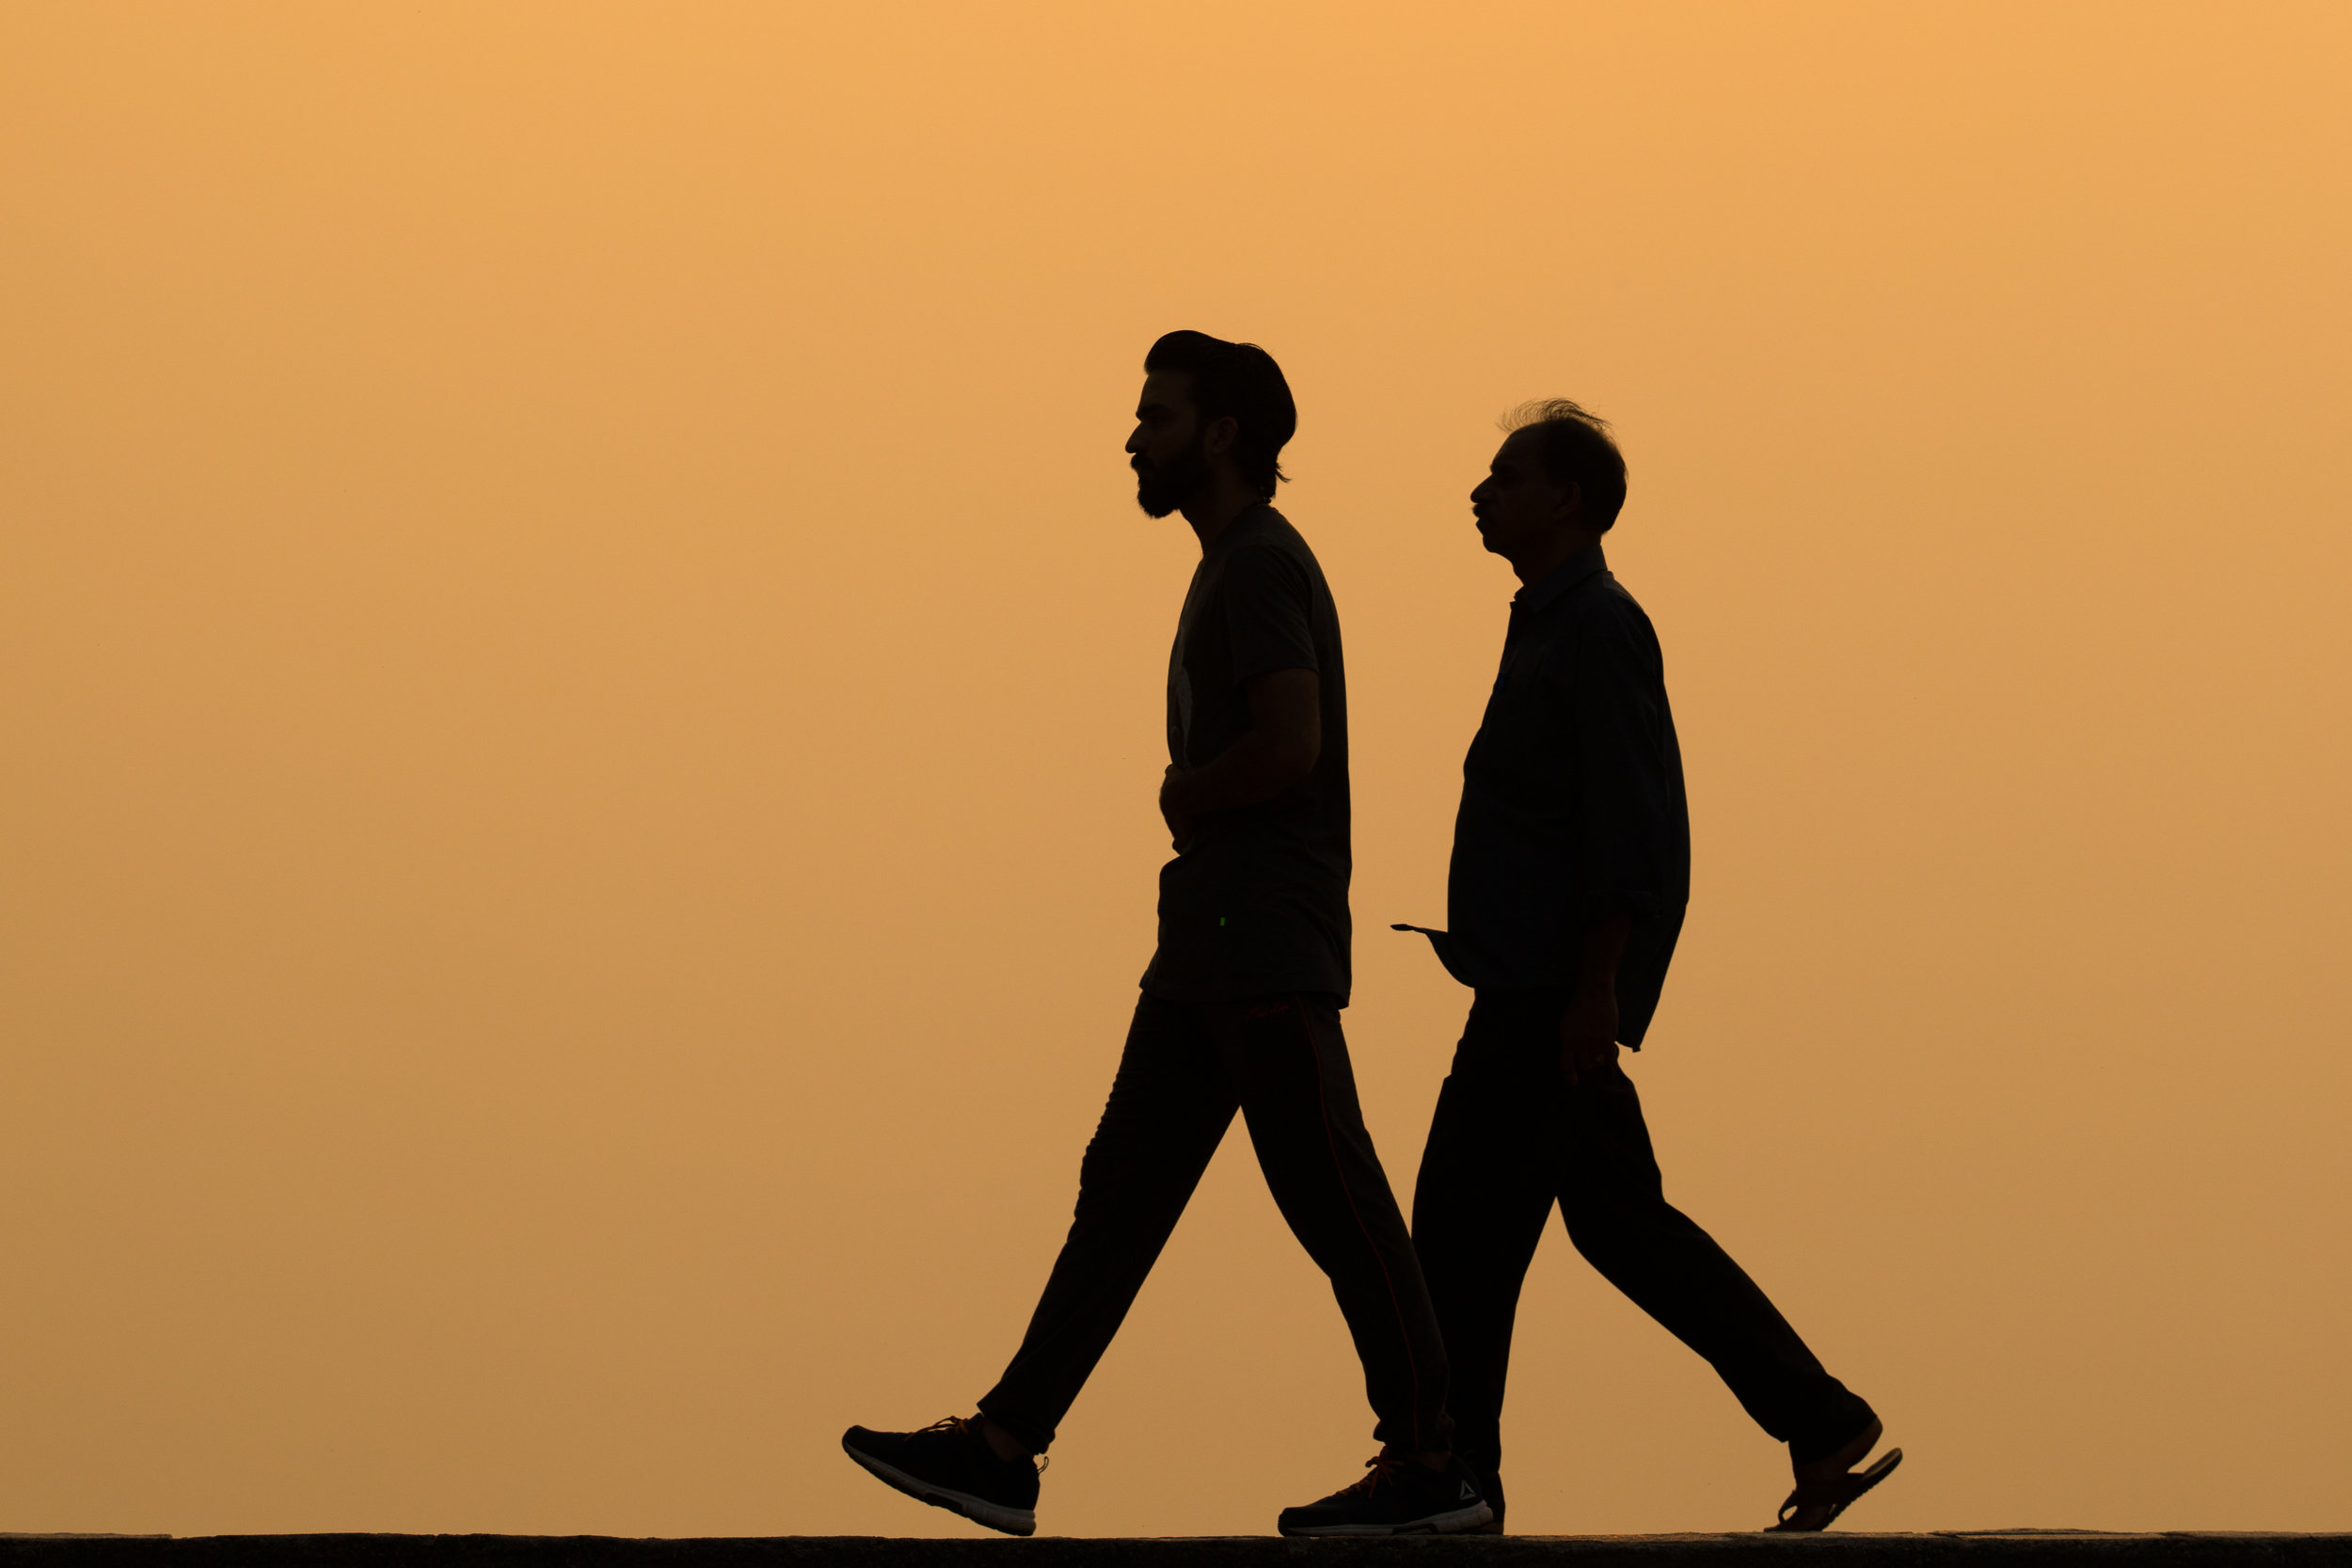 Silhouetted walkers at Sunset in Kochi, India.